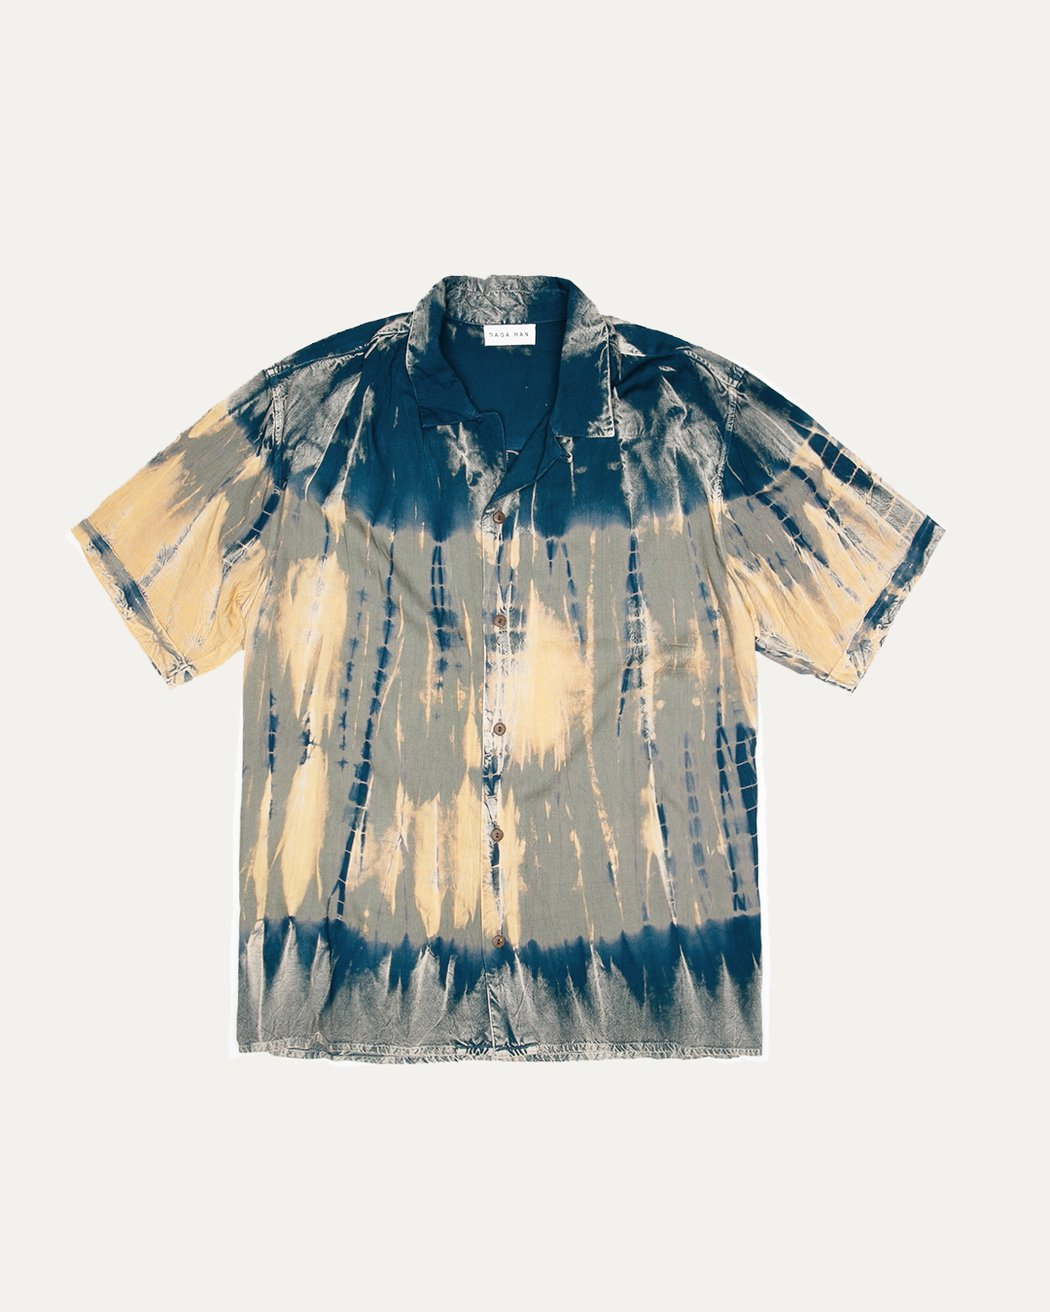 RAGAMAN SHORT SLEEVE TIE DYE BUTTON UP SHIRT - 8586